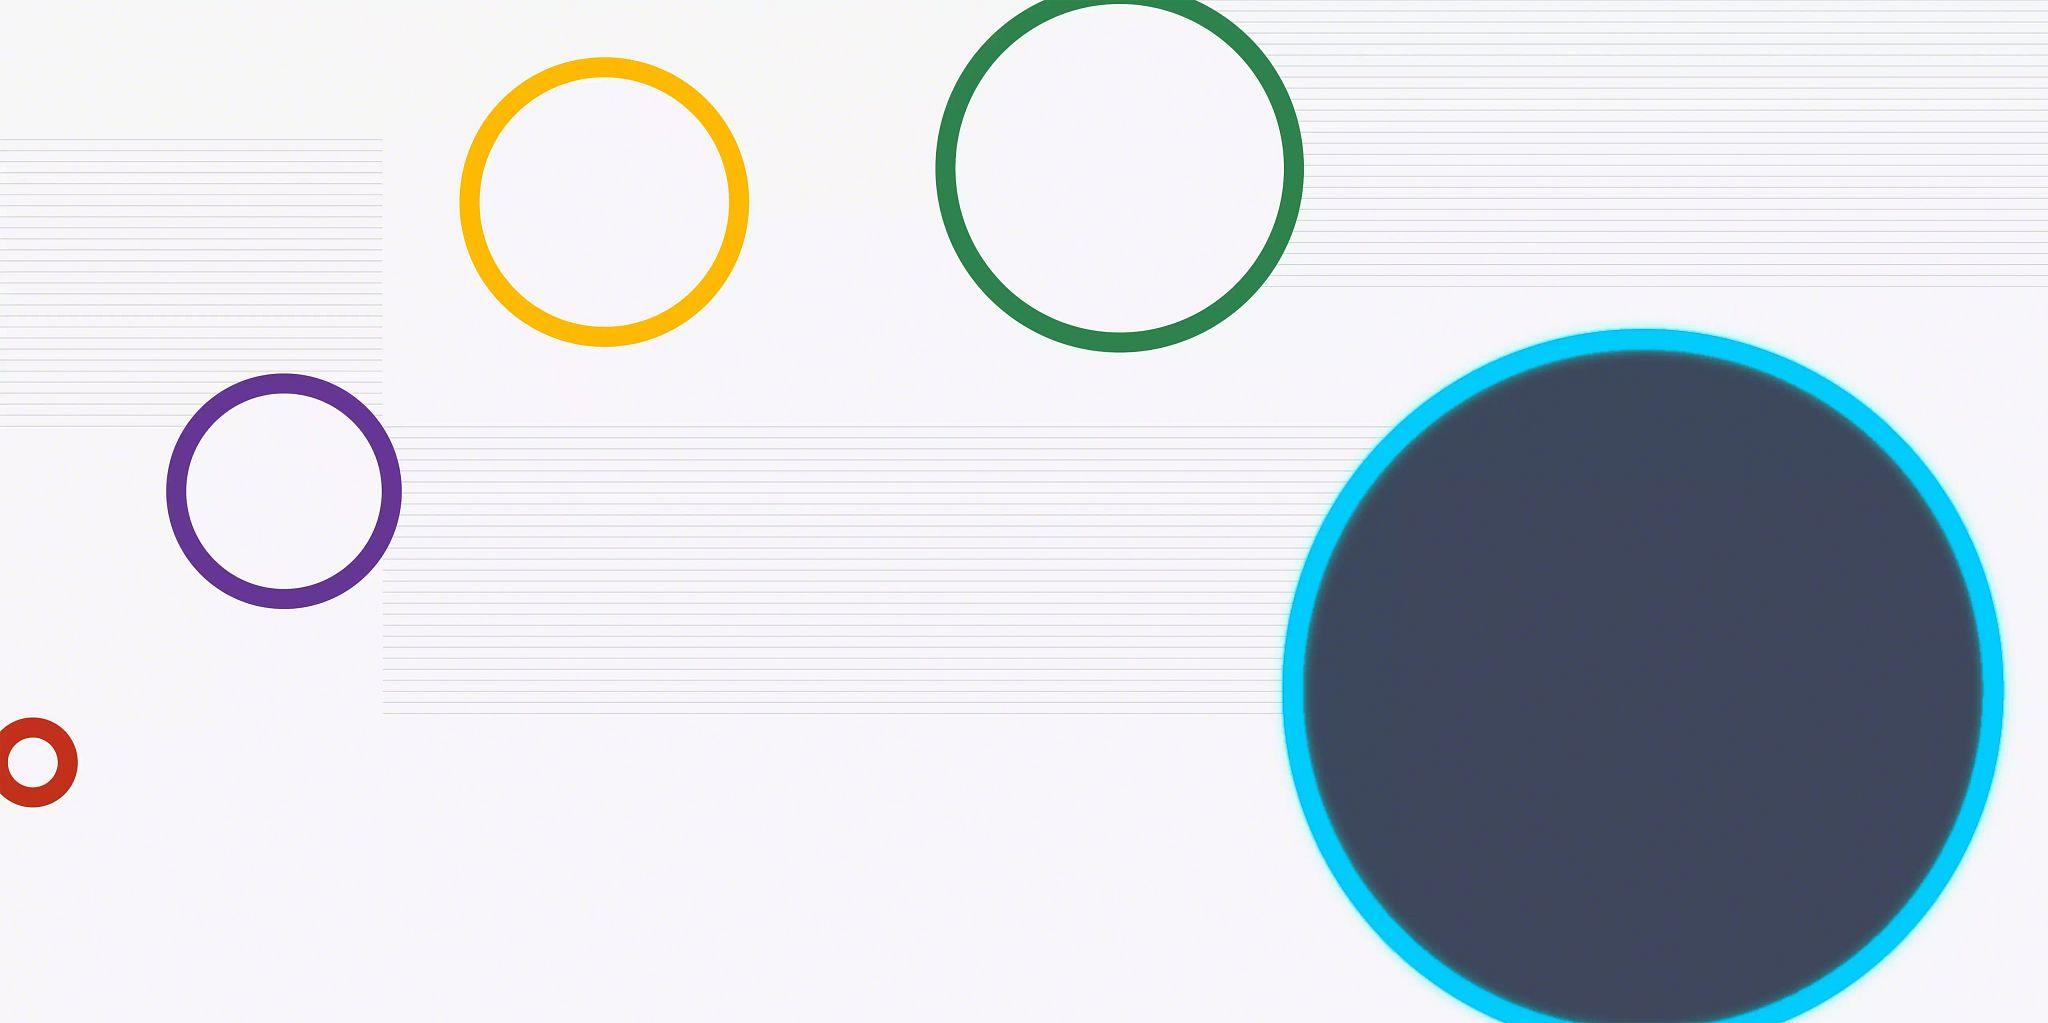 Five open circles outlined in different colors arched from the bottom left to the bottom right and growing in size from left to right. The final and biggest circle on the left is filled in with a dark blue-gray.